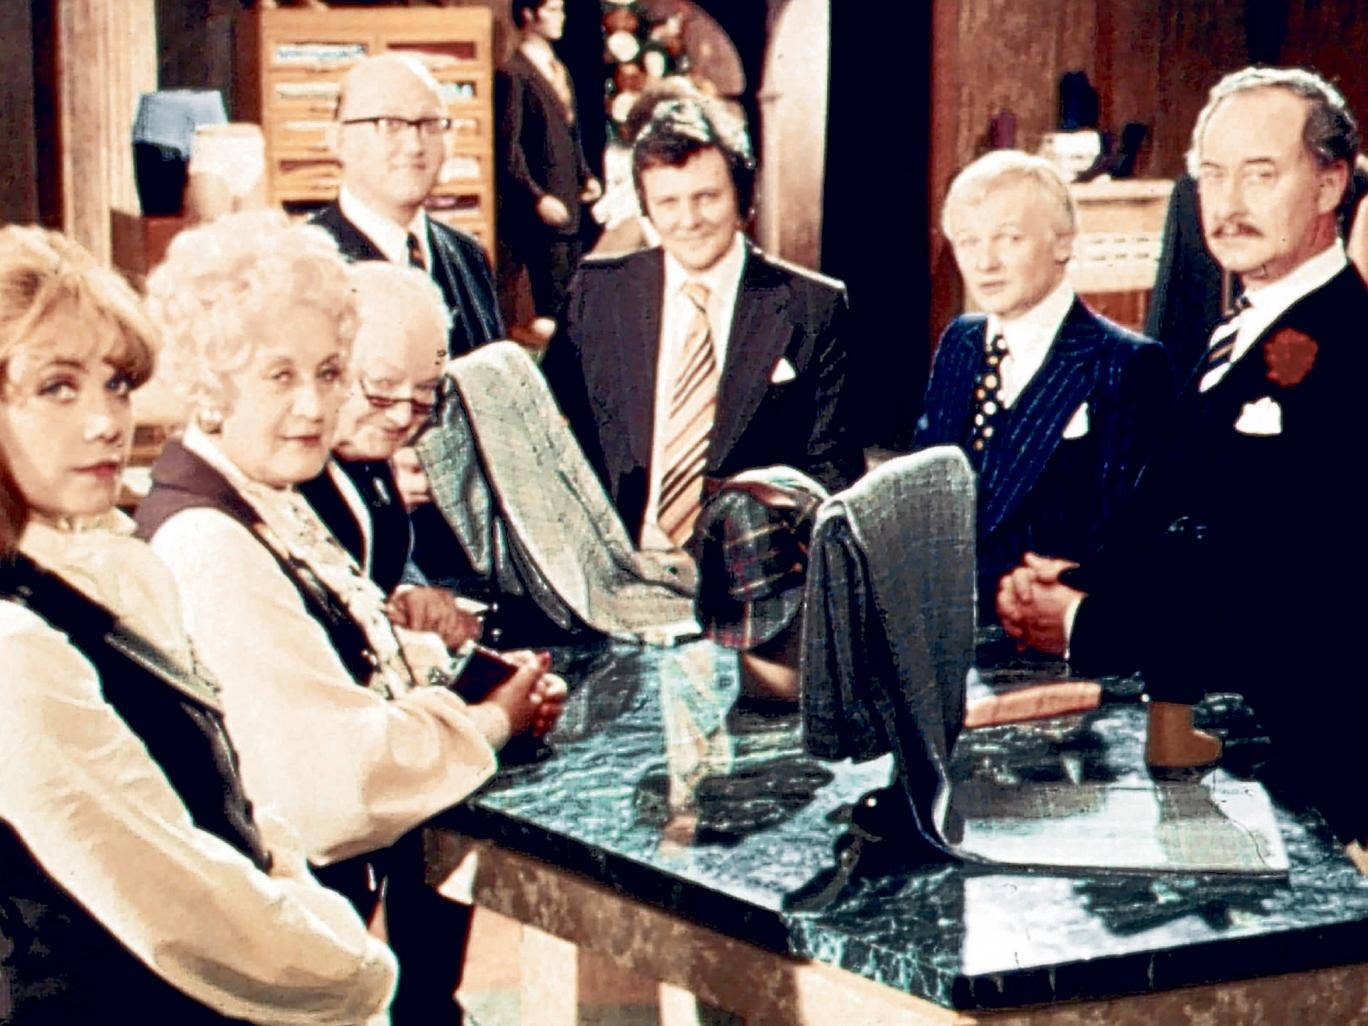 Thornton, far right, with the staff at Grace Brothers; although he was typecast as Captain Peacock, he never regretted taking the role